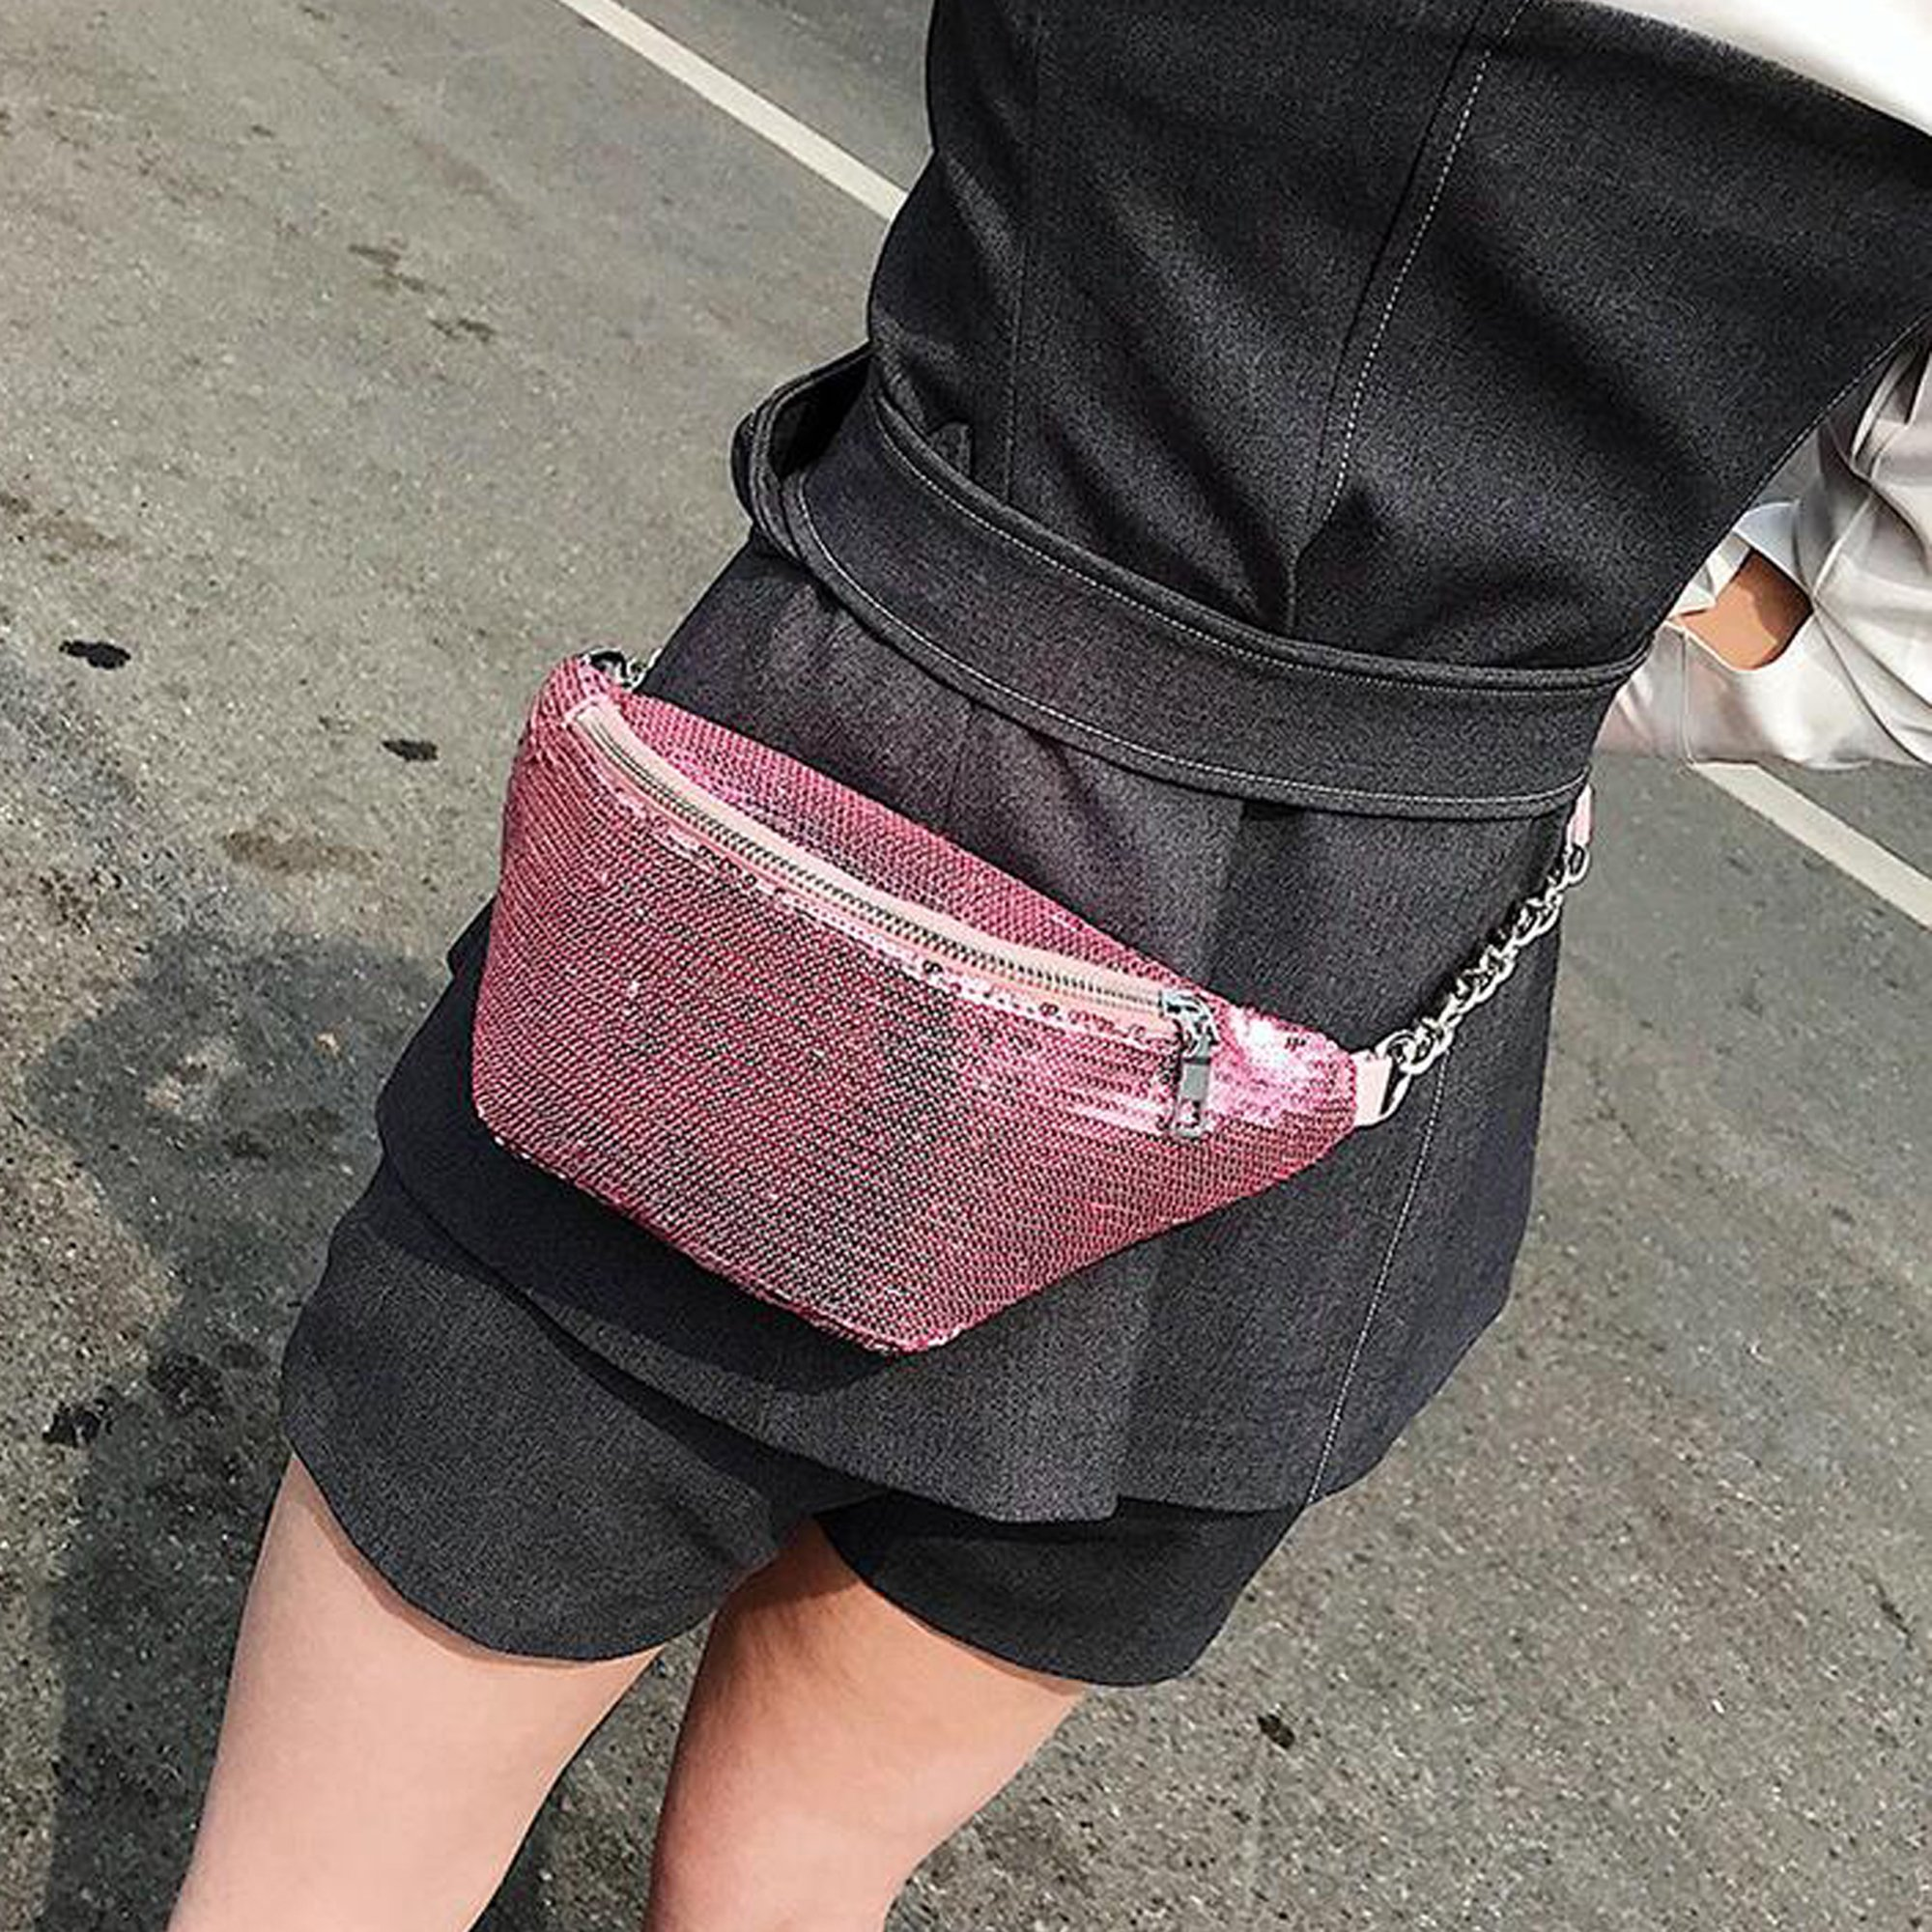 Womens Sequined Waist Fanny Pack Belt Pouch Sling Chest Bag Crossbody Hip Purse (pink) by JIANBAO (Image #2)